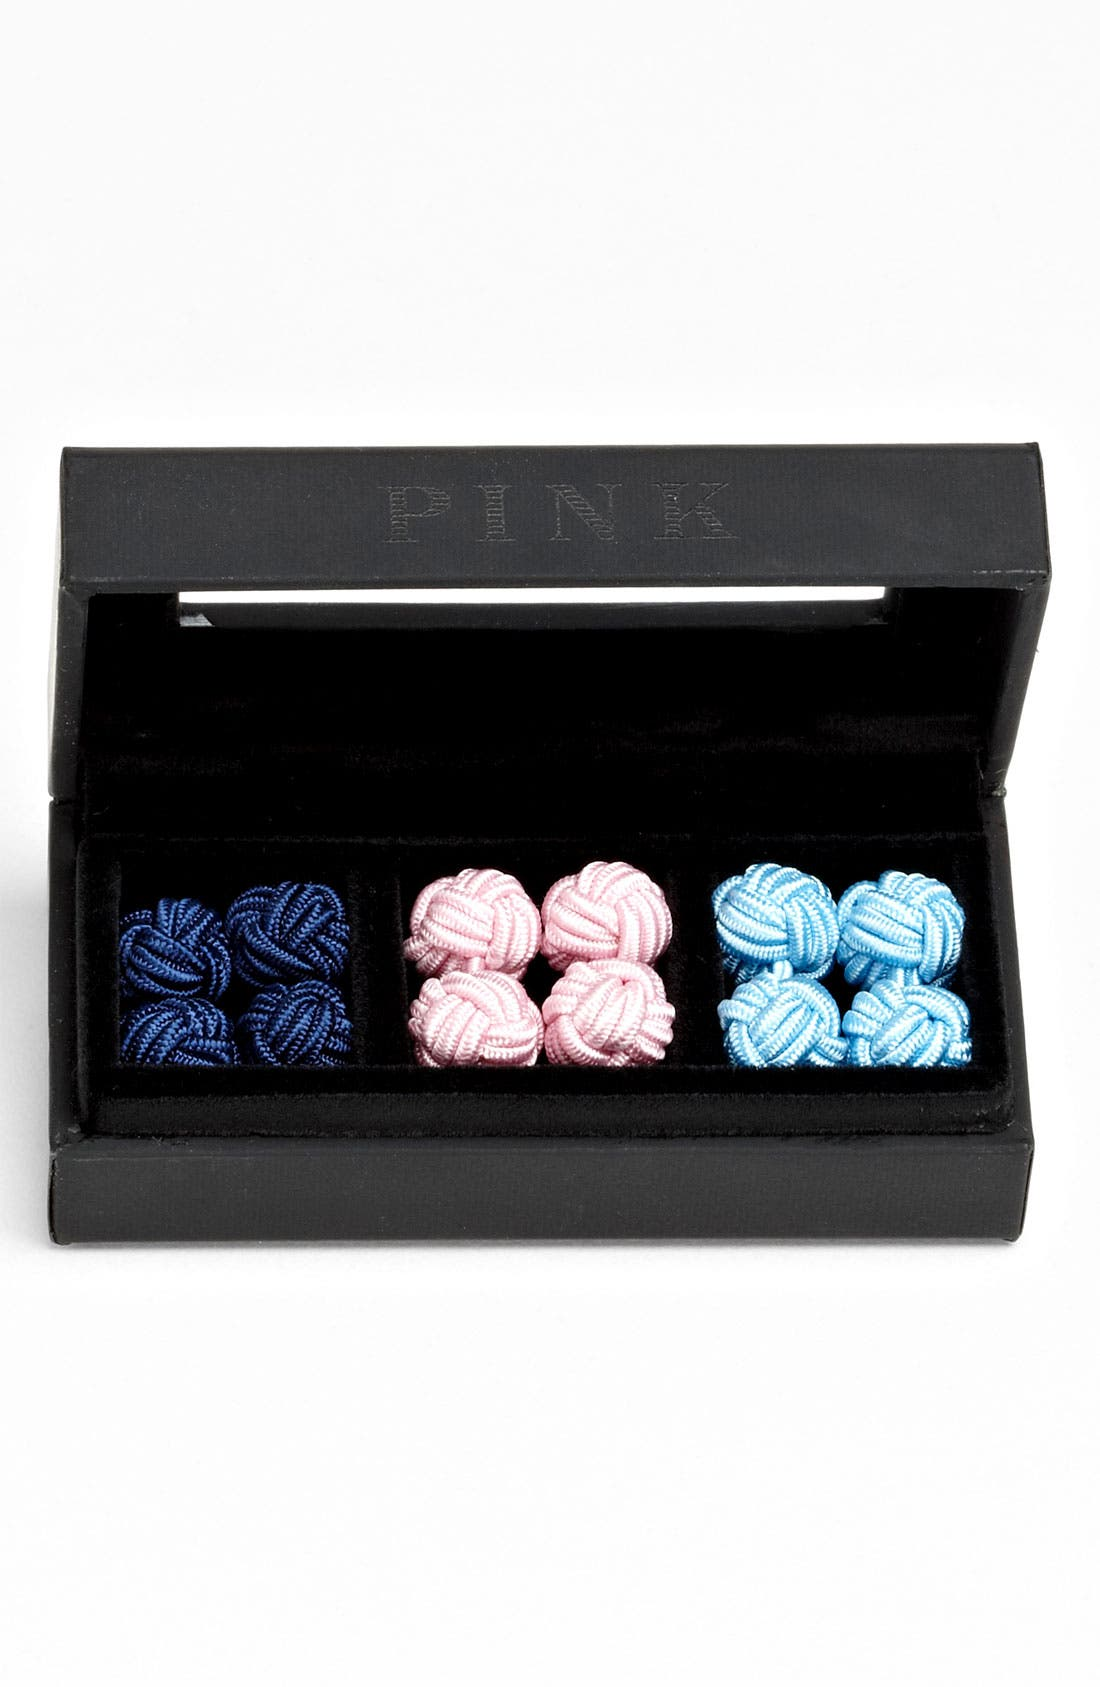 Main Image - Thomas Pink Knotted Cuff Links (Boxed Set of 3)